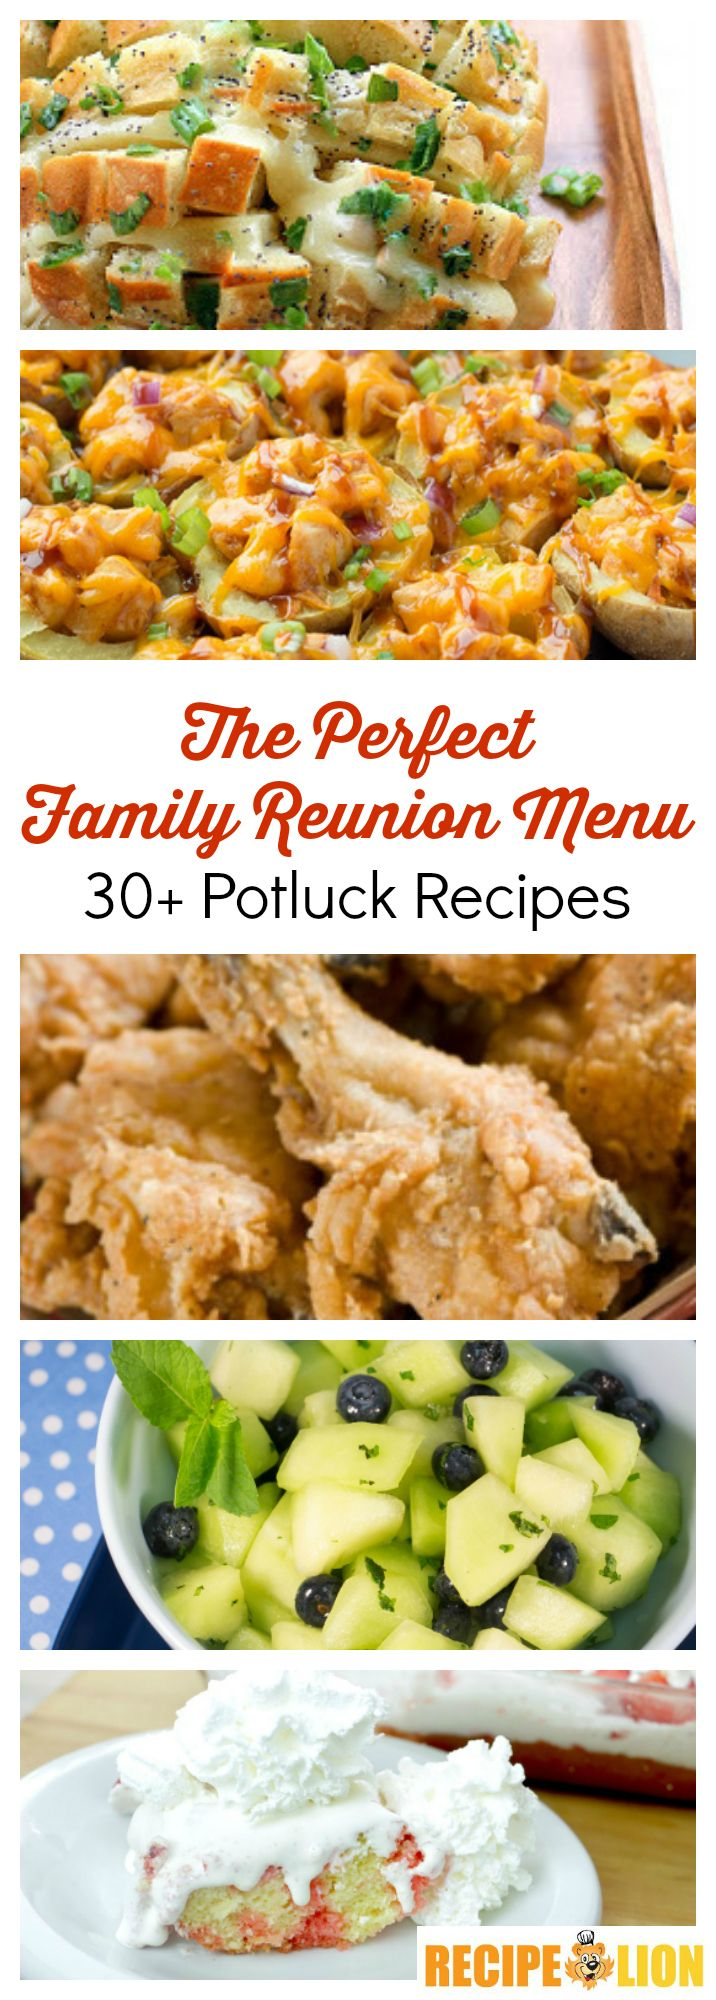 These potluck recipes are perfect for family reunions, barbecues, picnics, and more! (The fried chicken and pull apart bread recipes are especially tasty!)